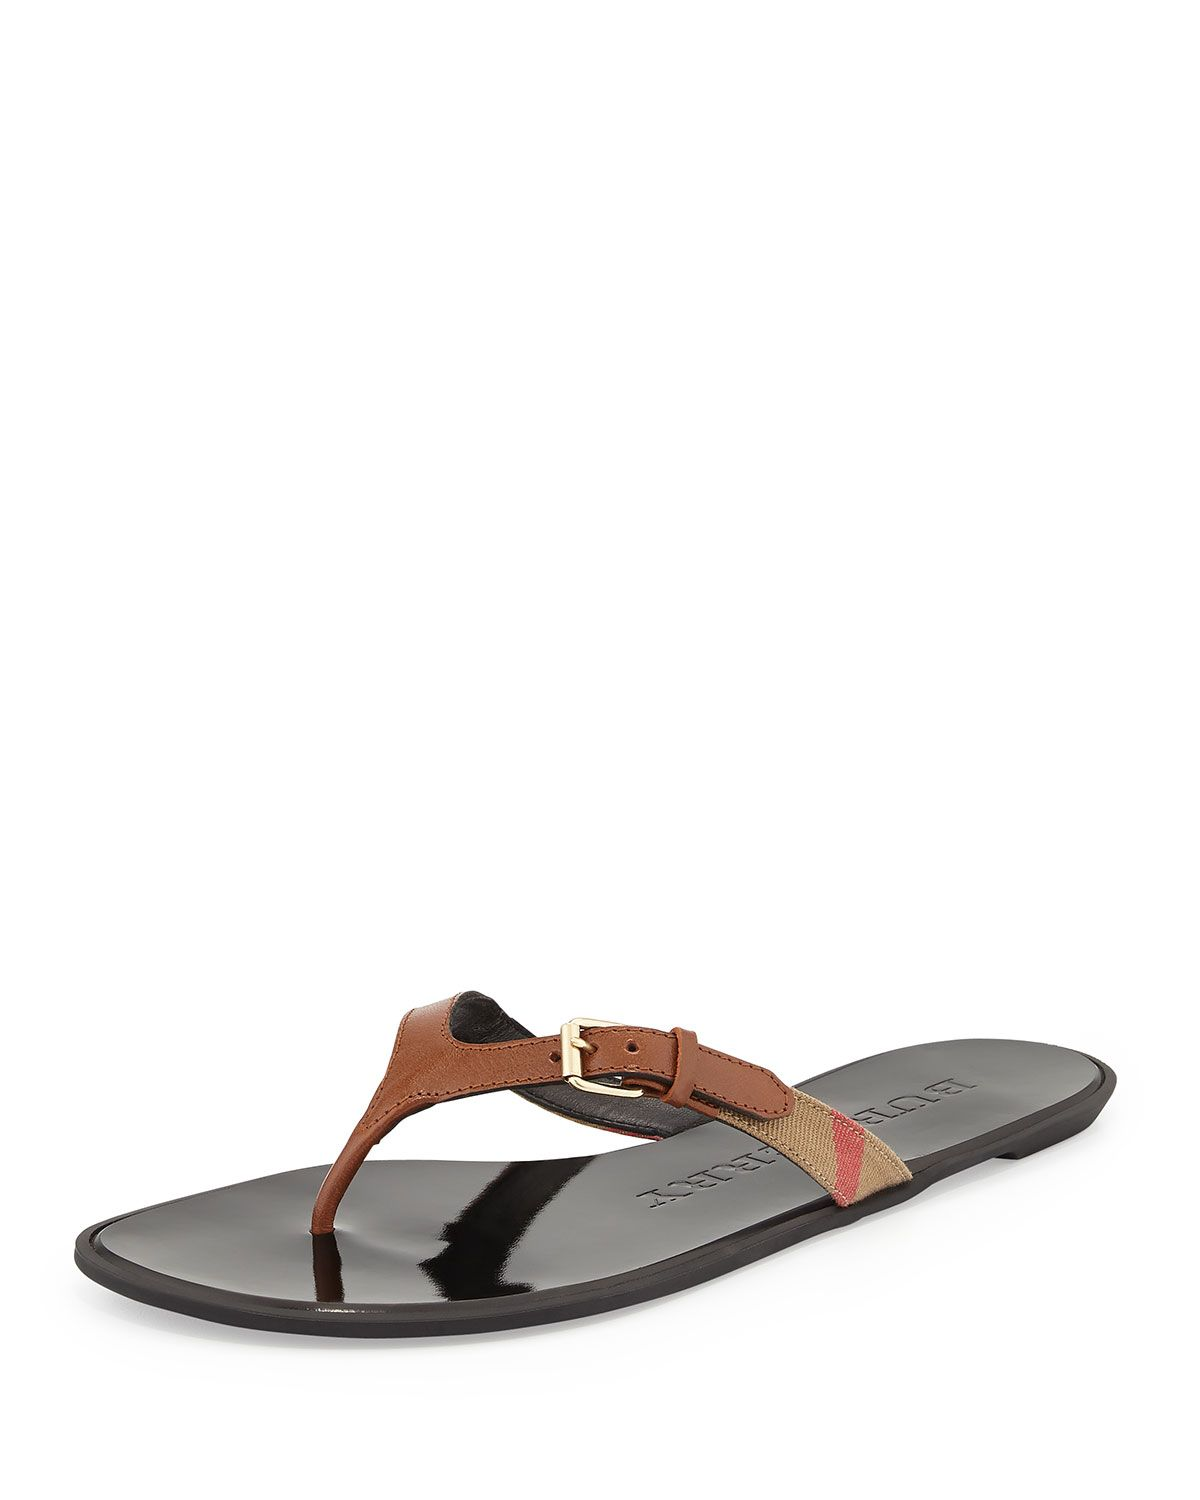 caaea6a68296 Masie Belted Check Thong Sandal